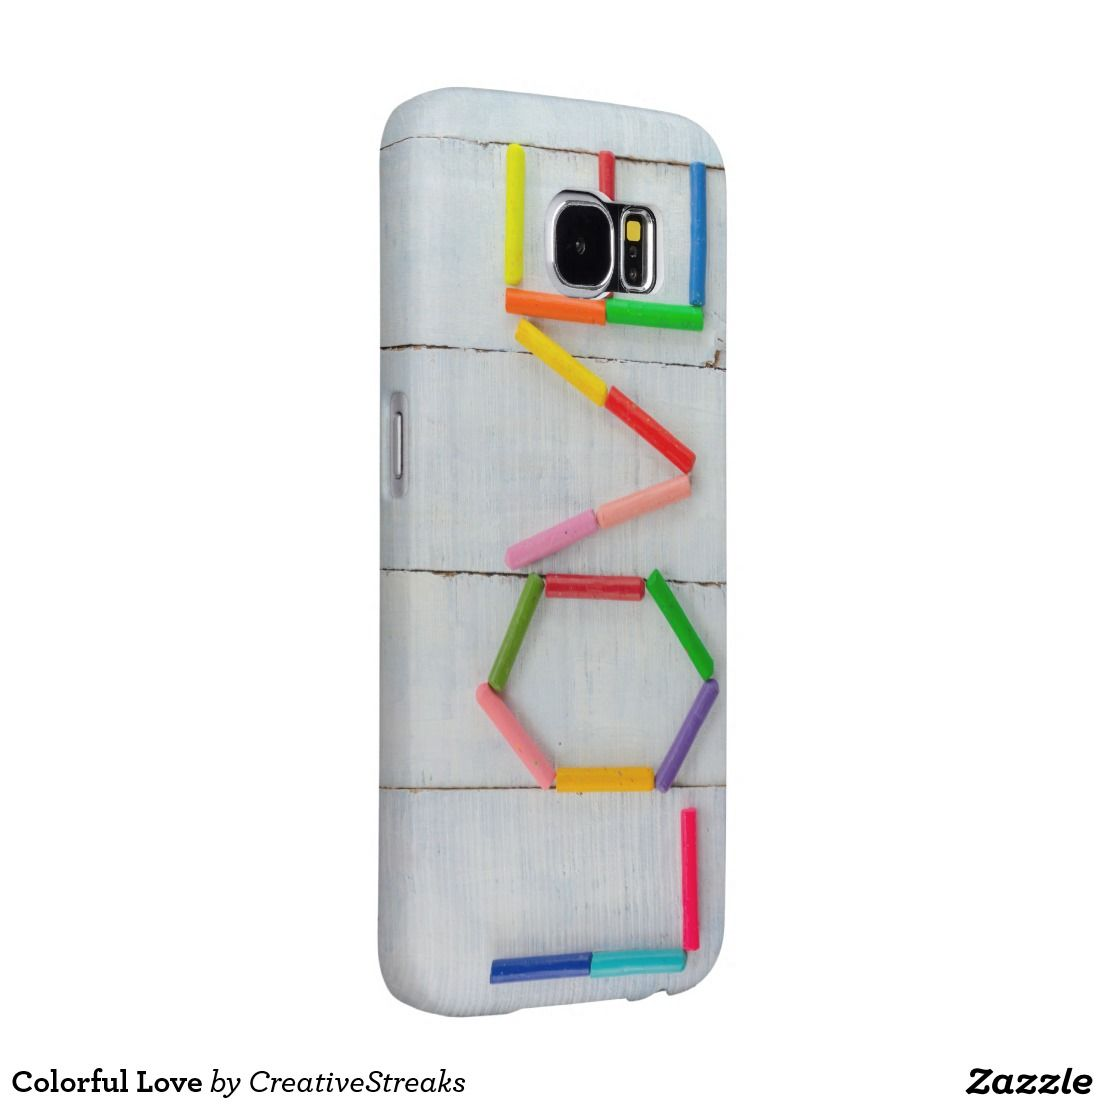 Colorful Love Samsung Galaxy S6 Cases